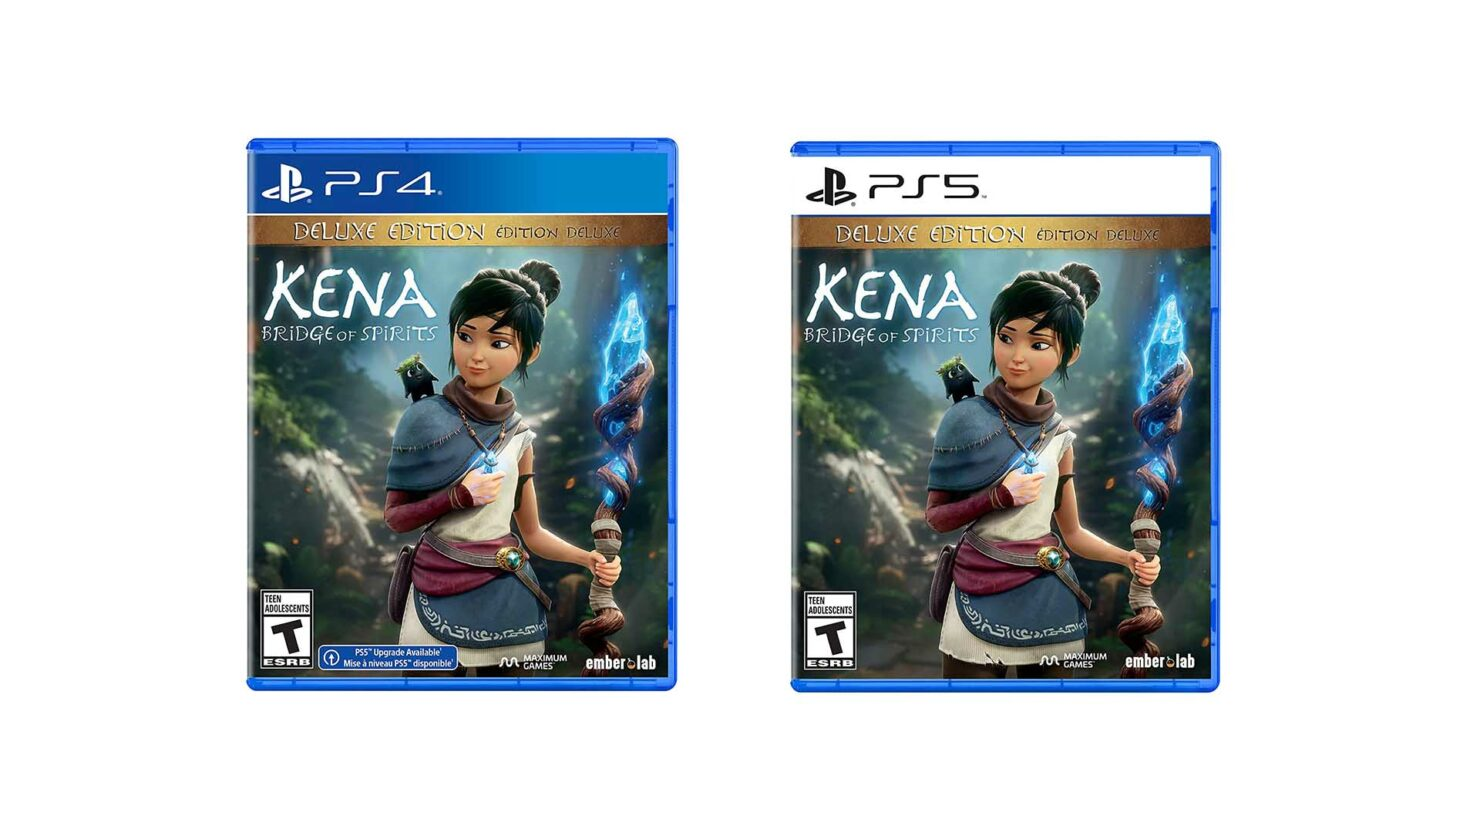 Kena: Bridge of Spirits Deluxe Edition Is up for Pre-Order for PS4, PS5, for Just $49.99